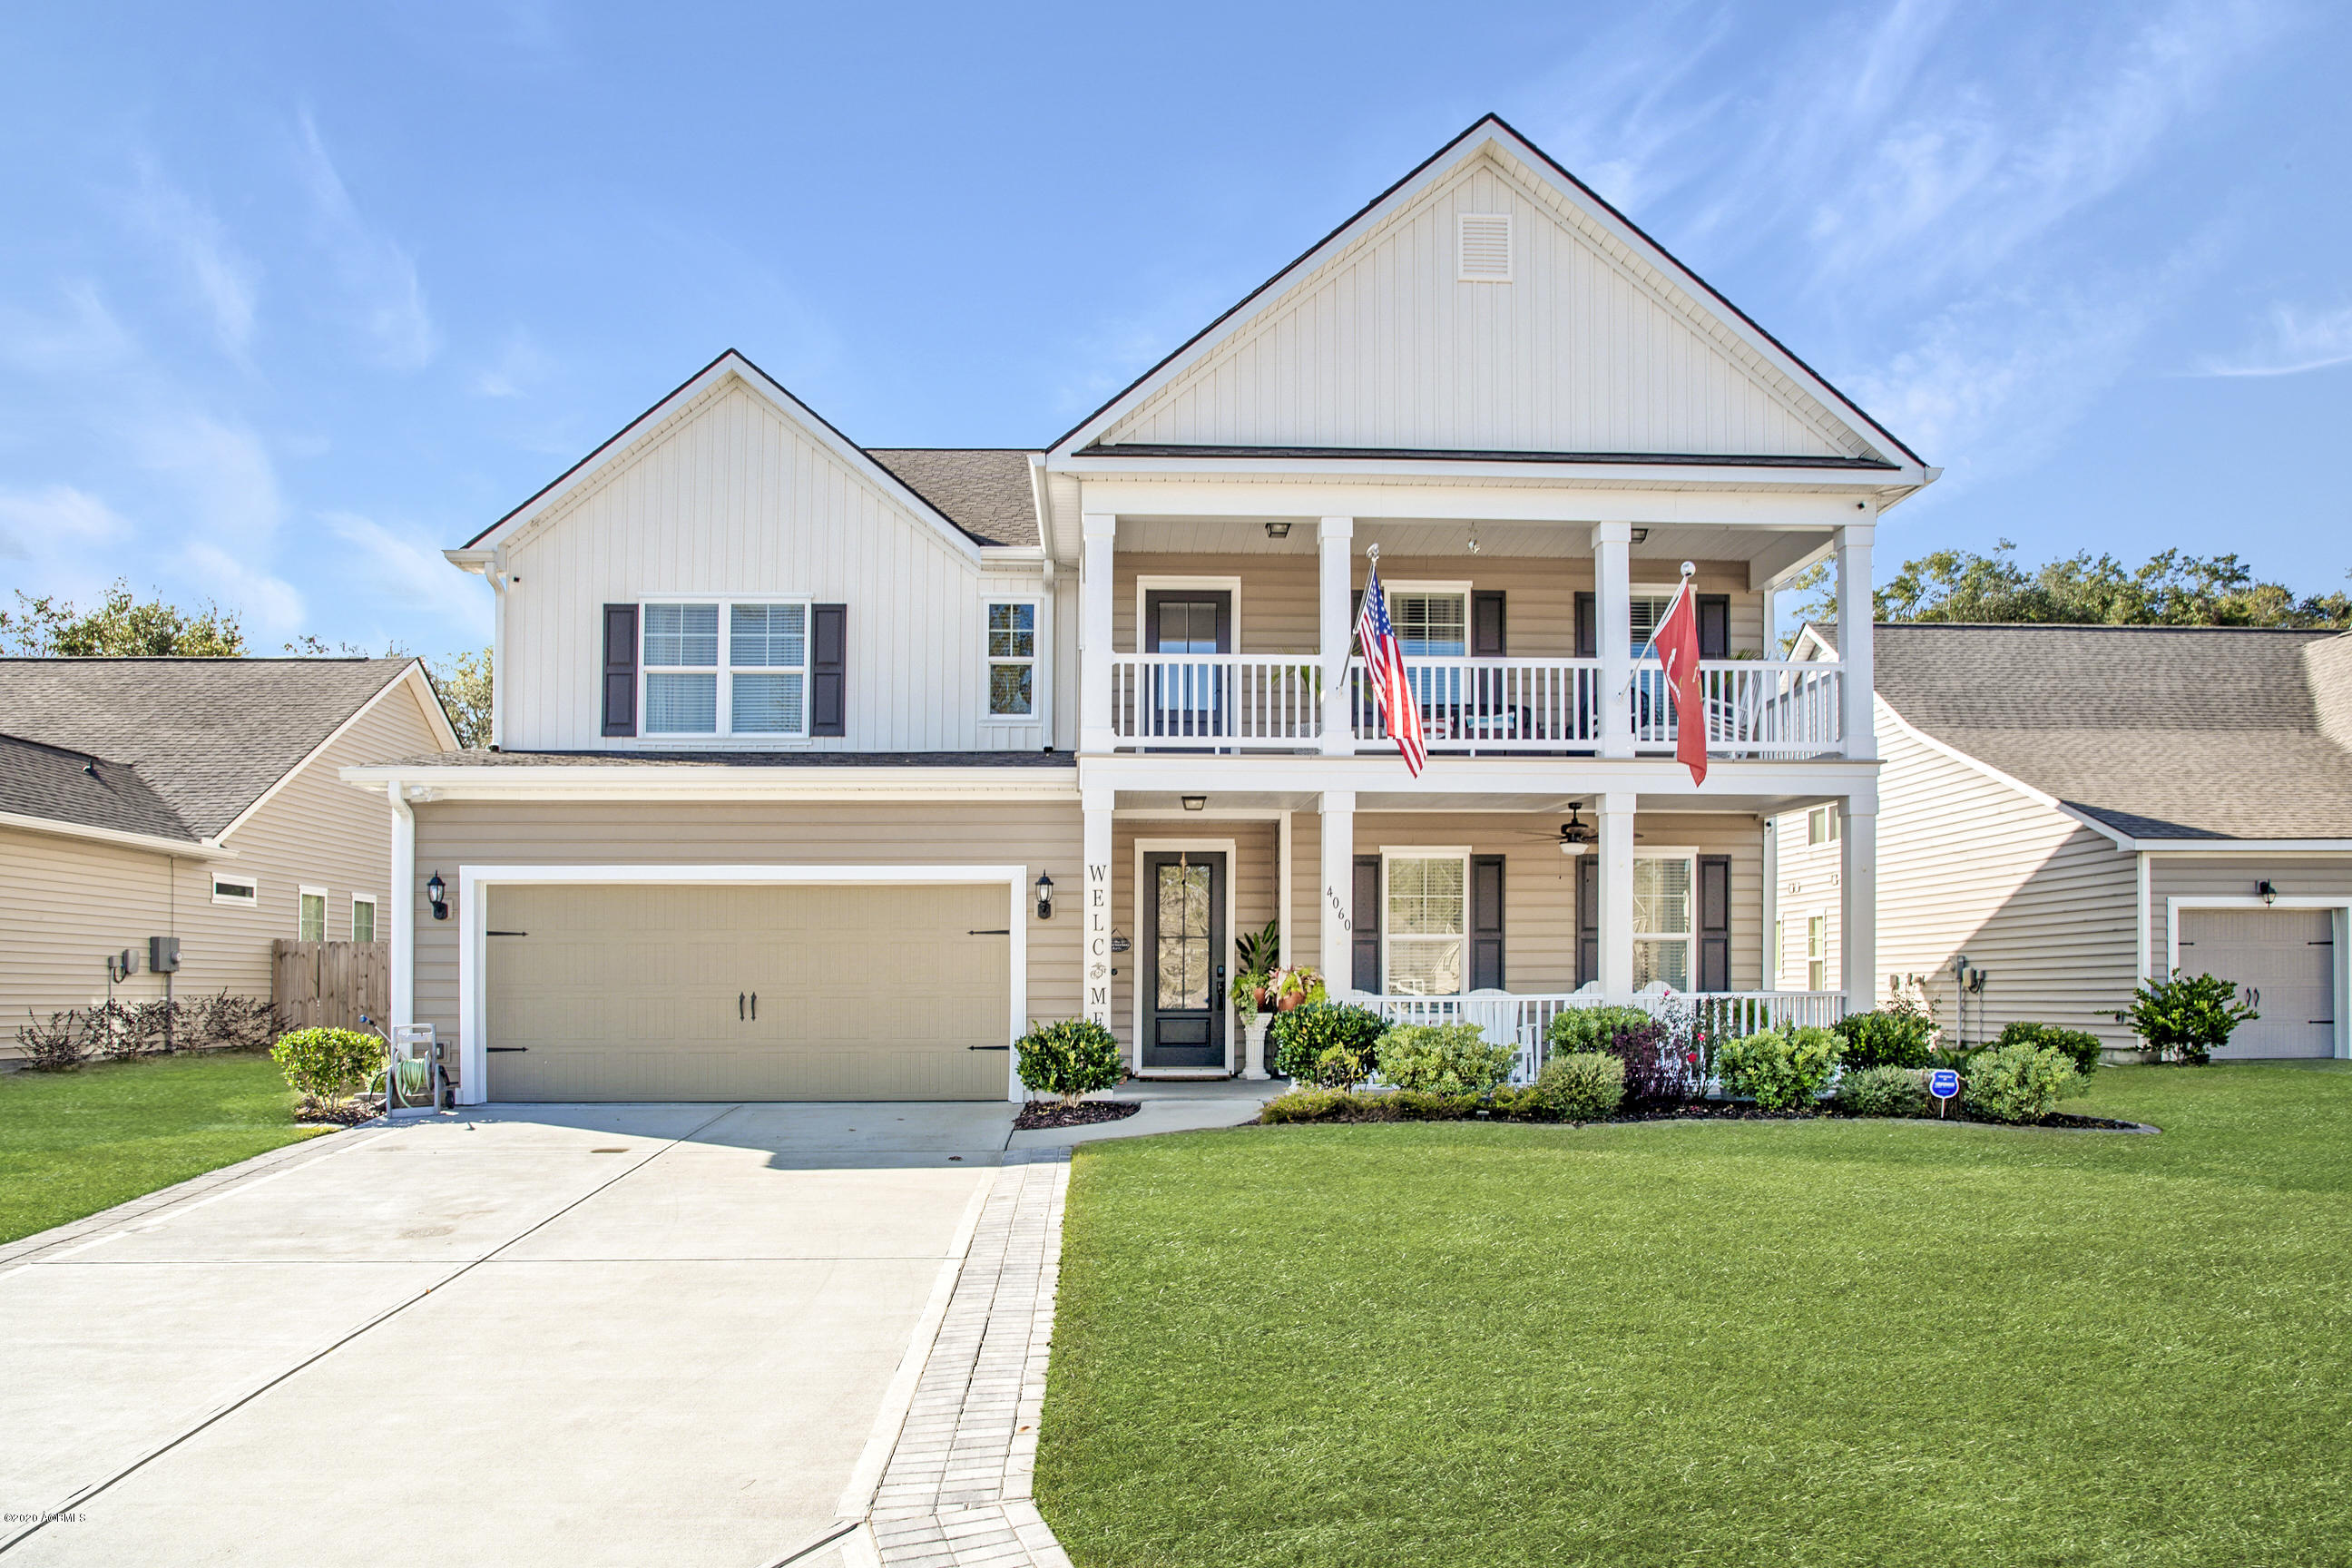 Photo of 4060 Sage Drive, Beaufort, SC 29907